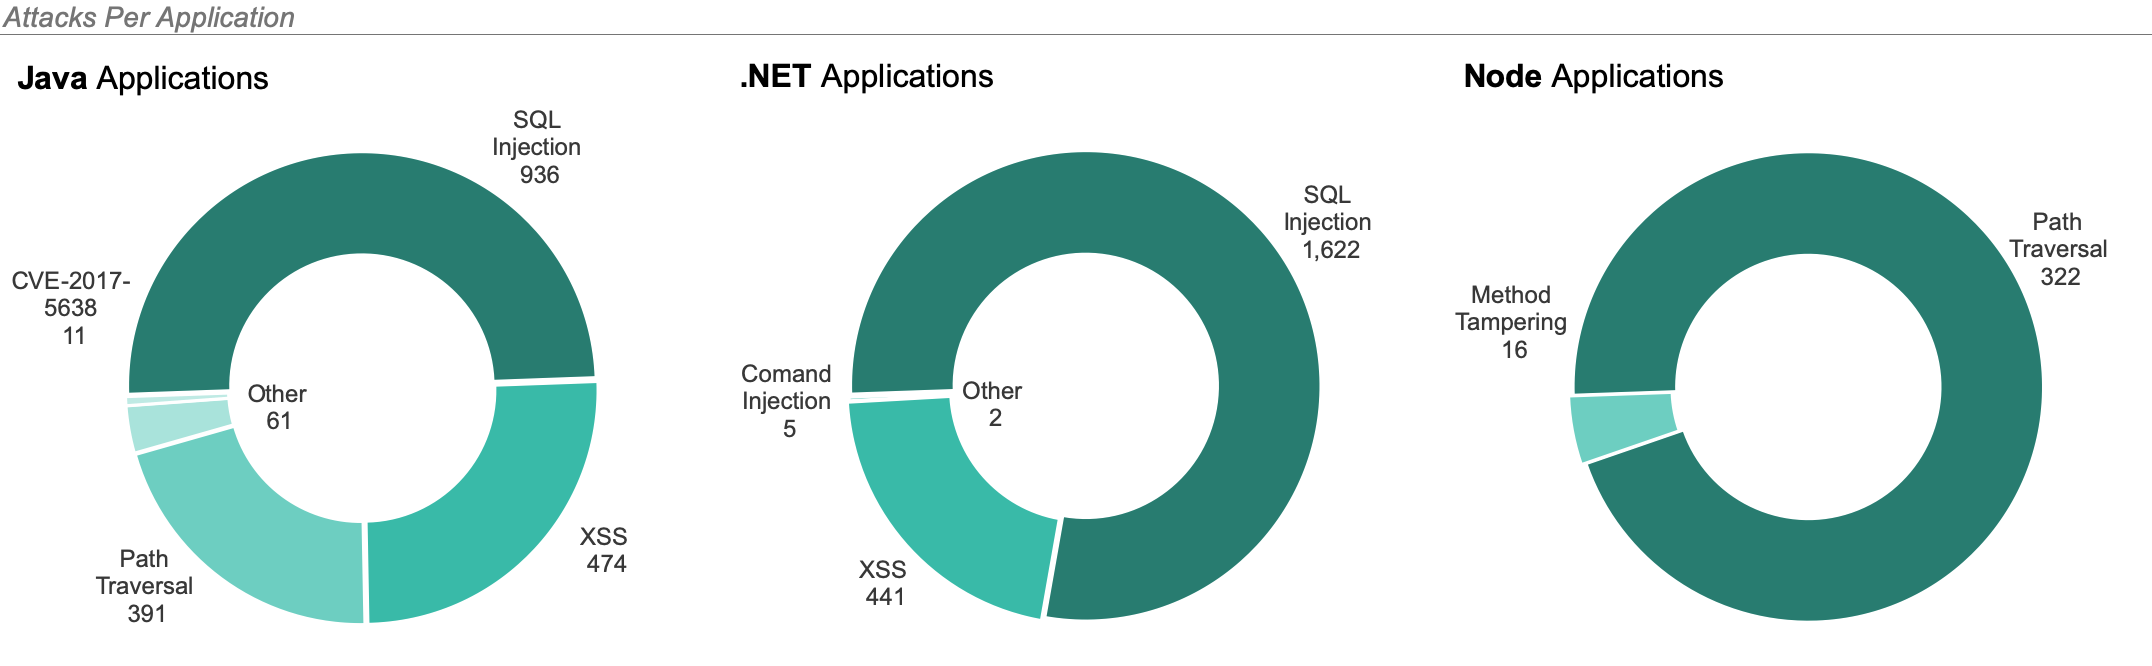 AppSec Intelligence Report graph showing top attack vectors by language